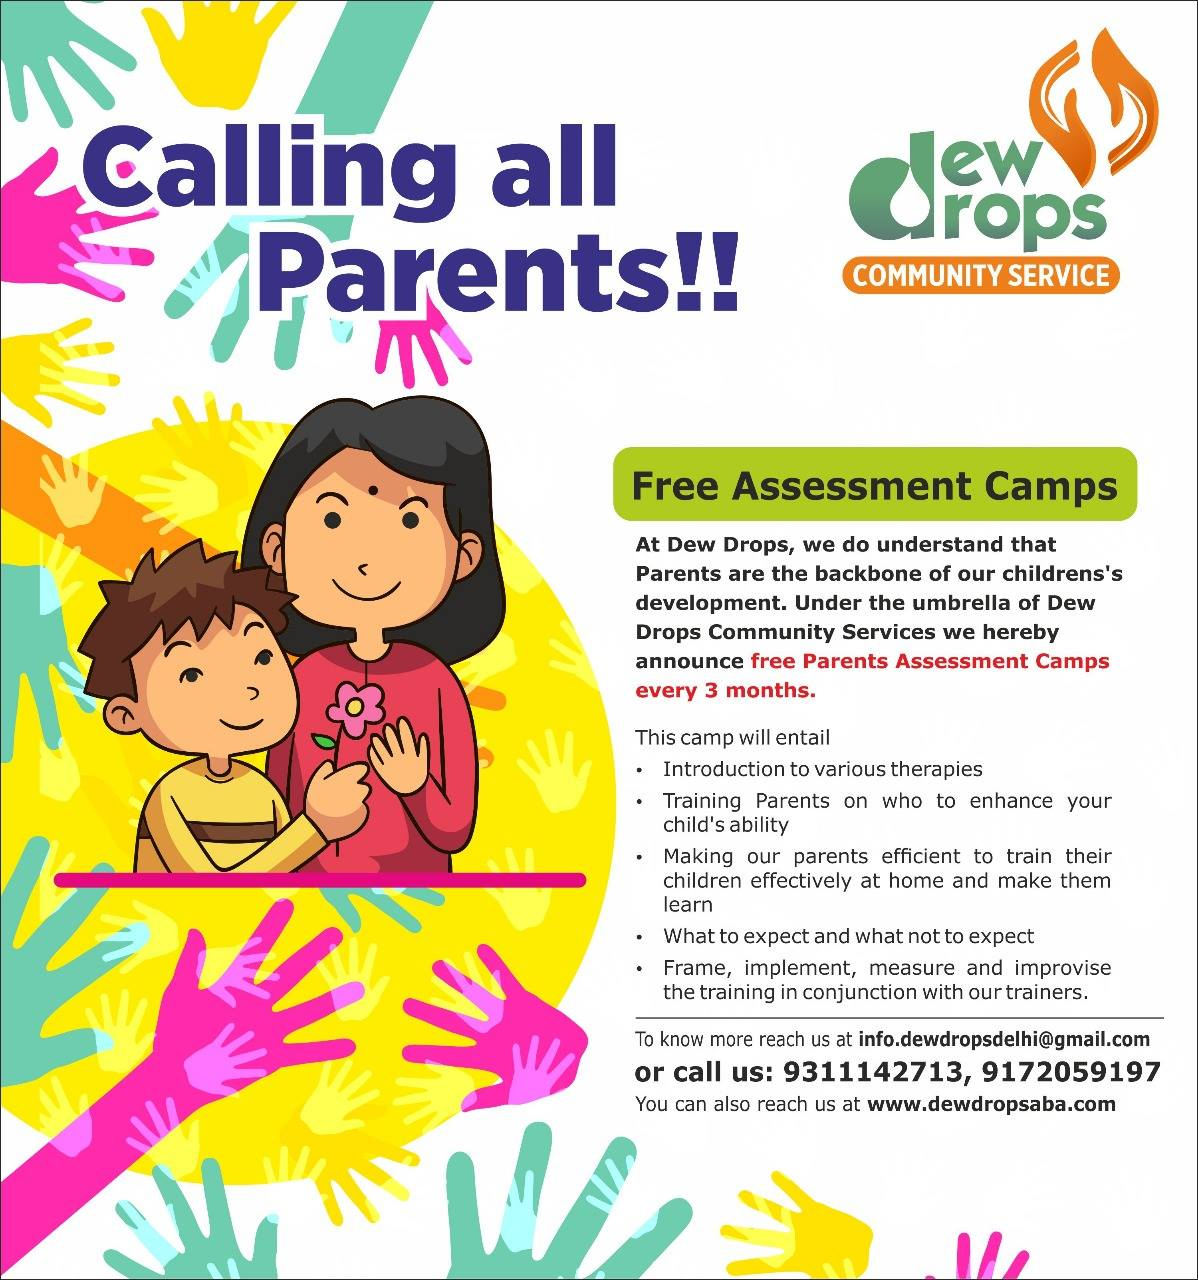 Free Assessment Camps